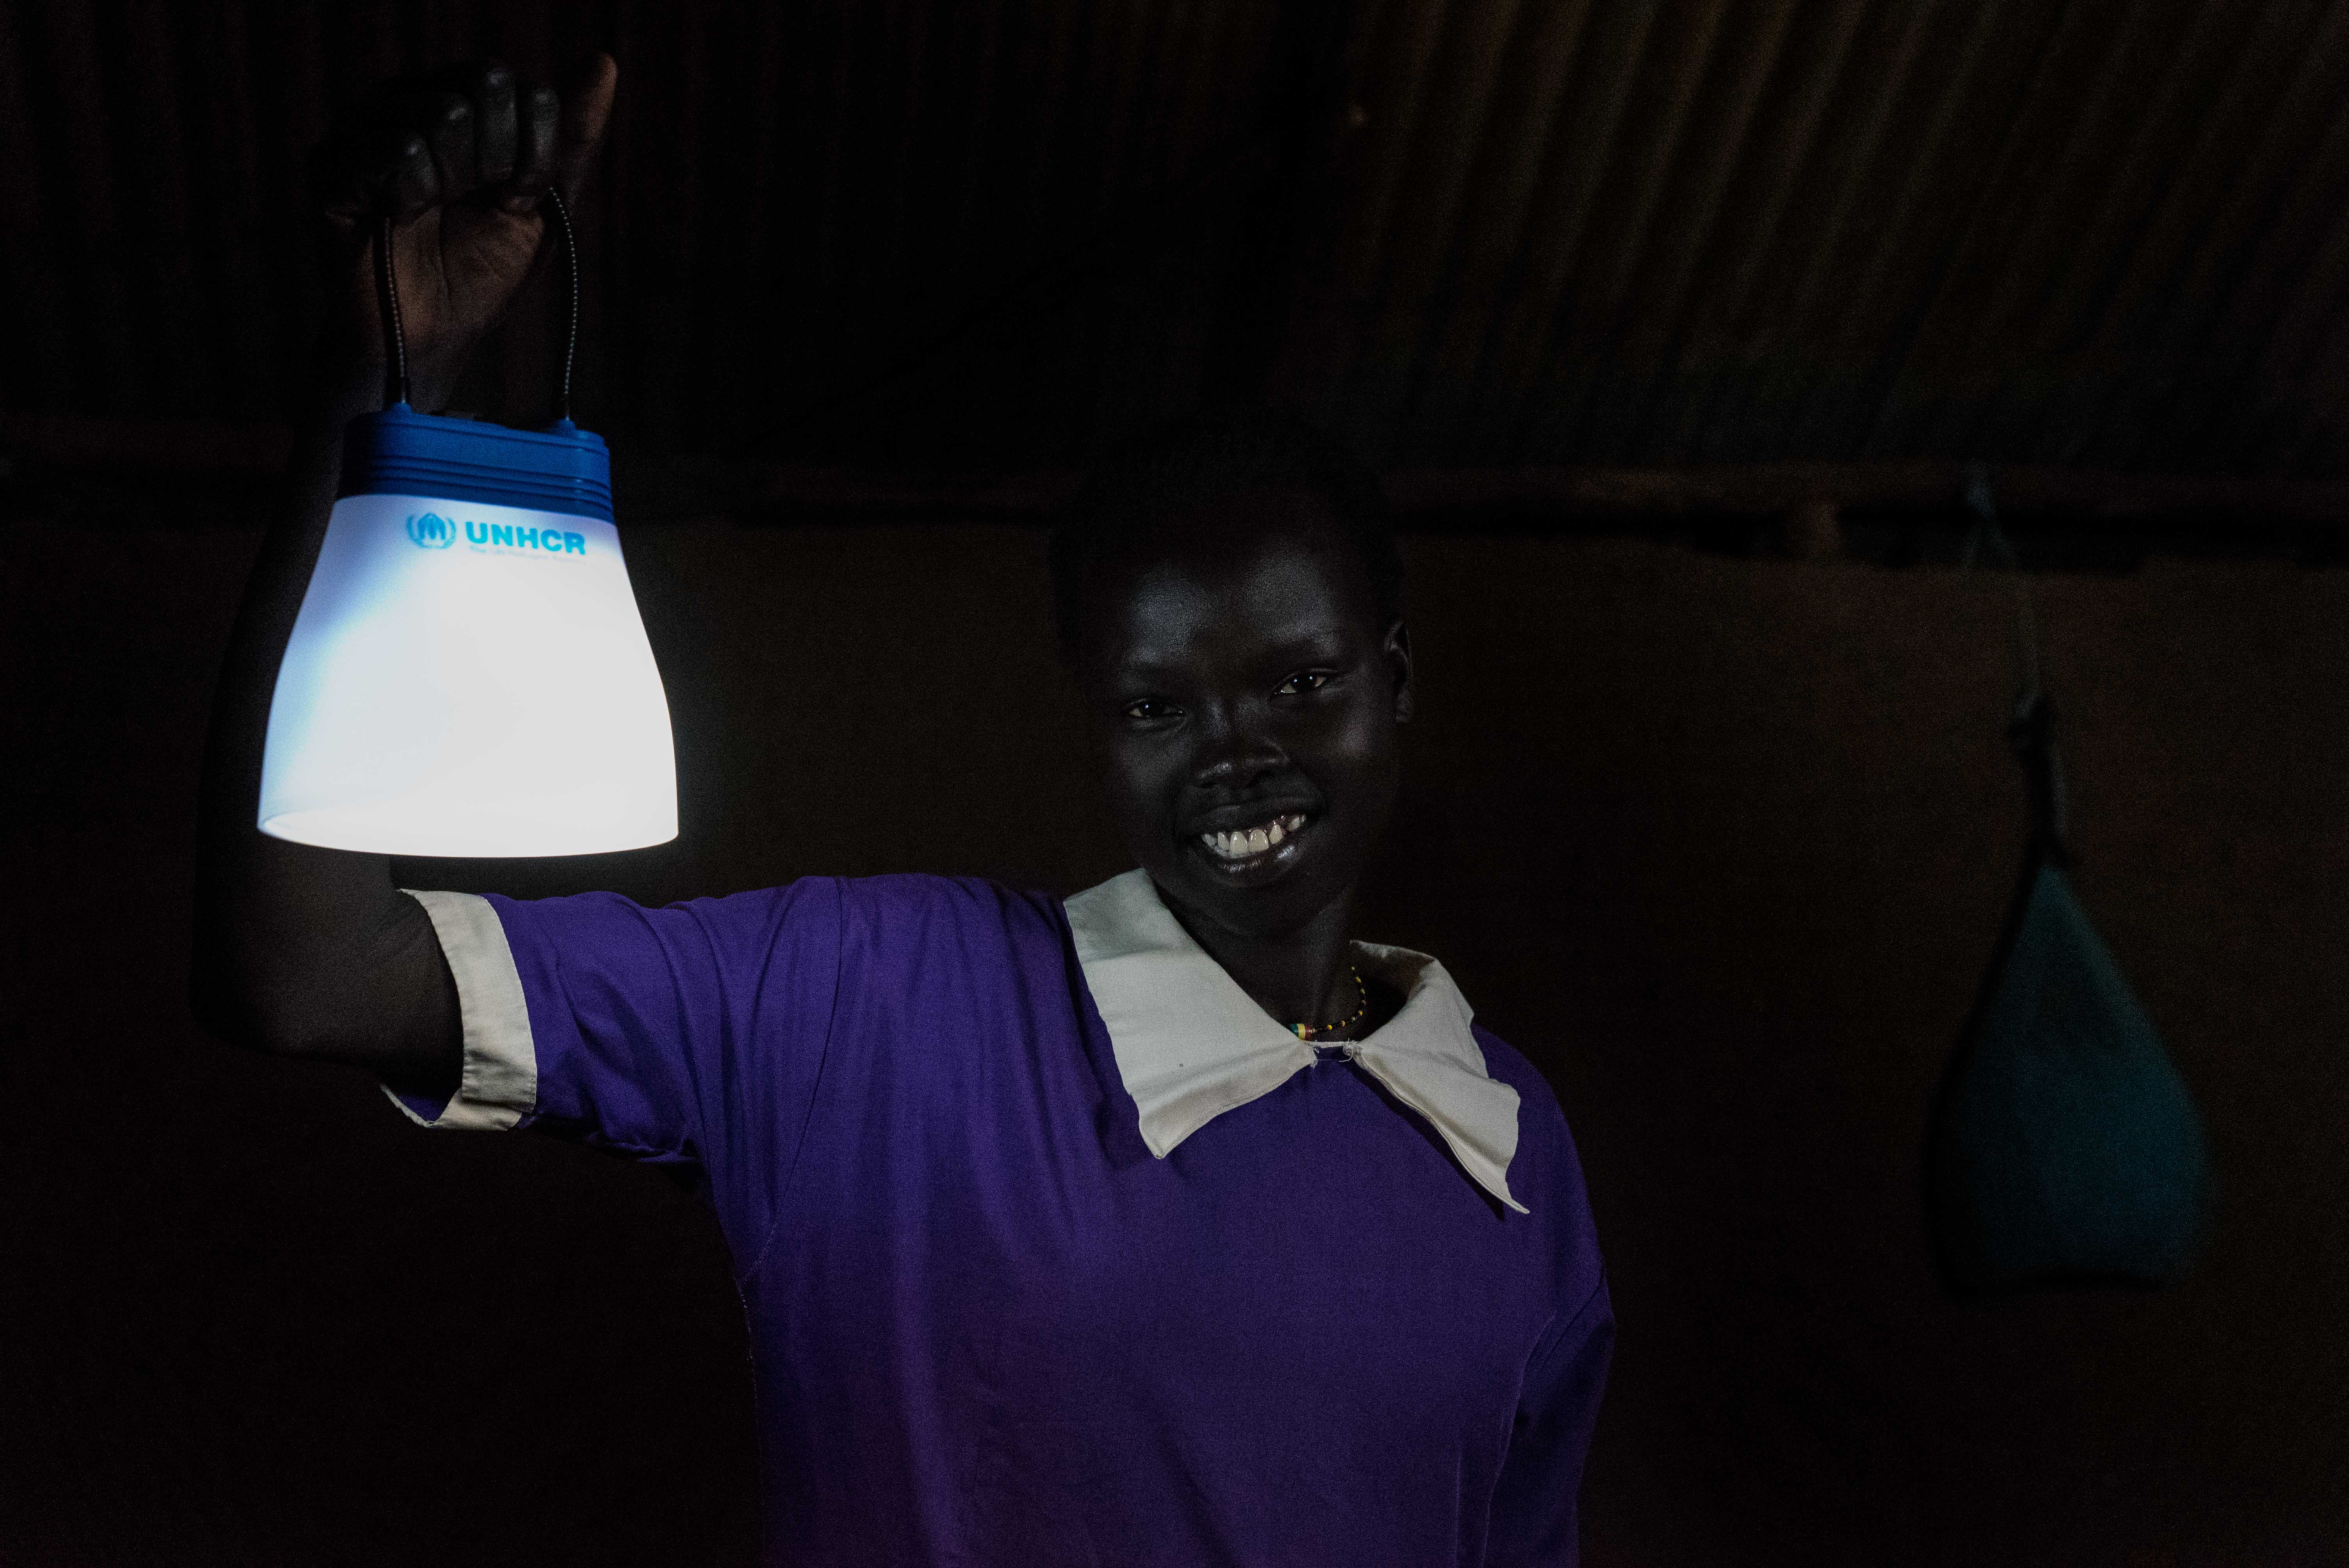 ikea foundation birght products million lives club sunbell solar lamp